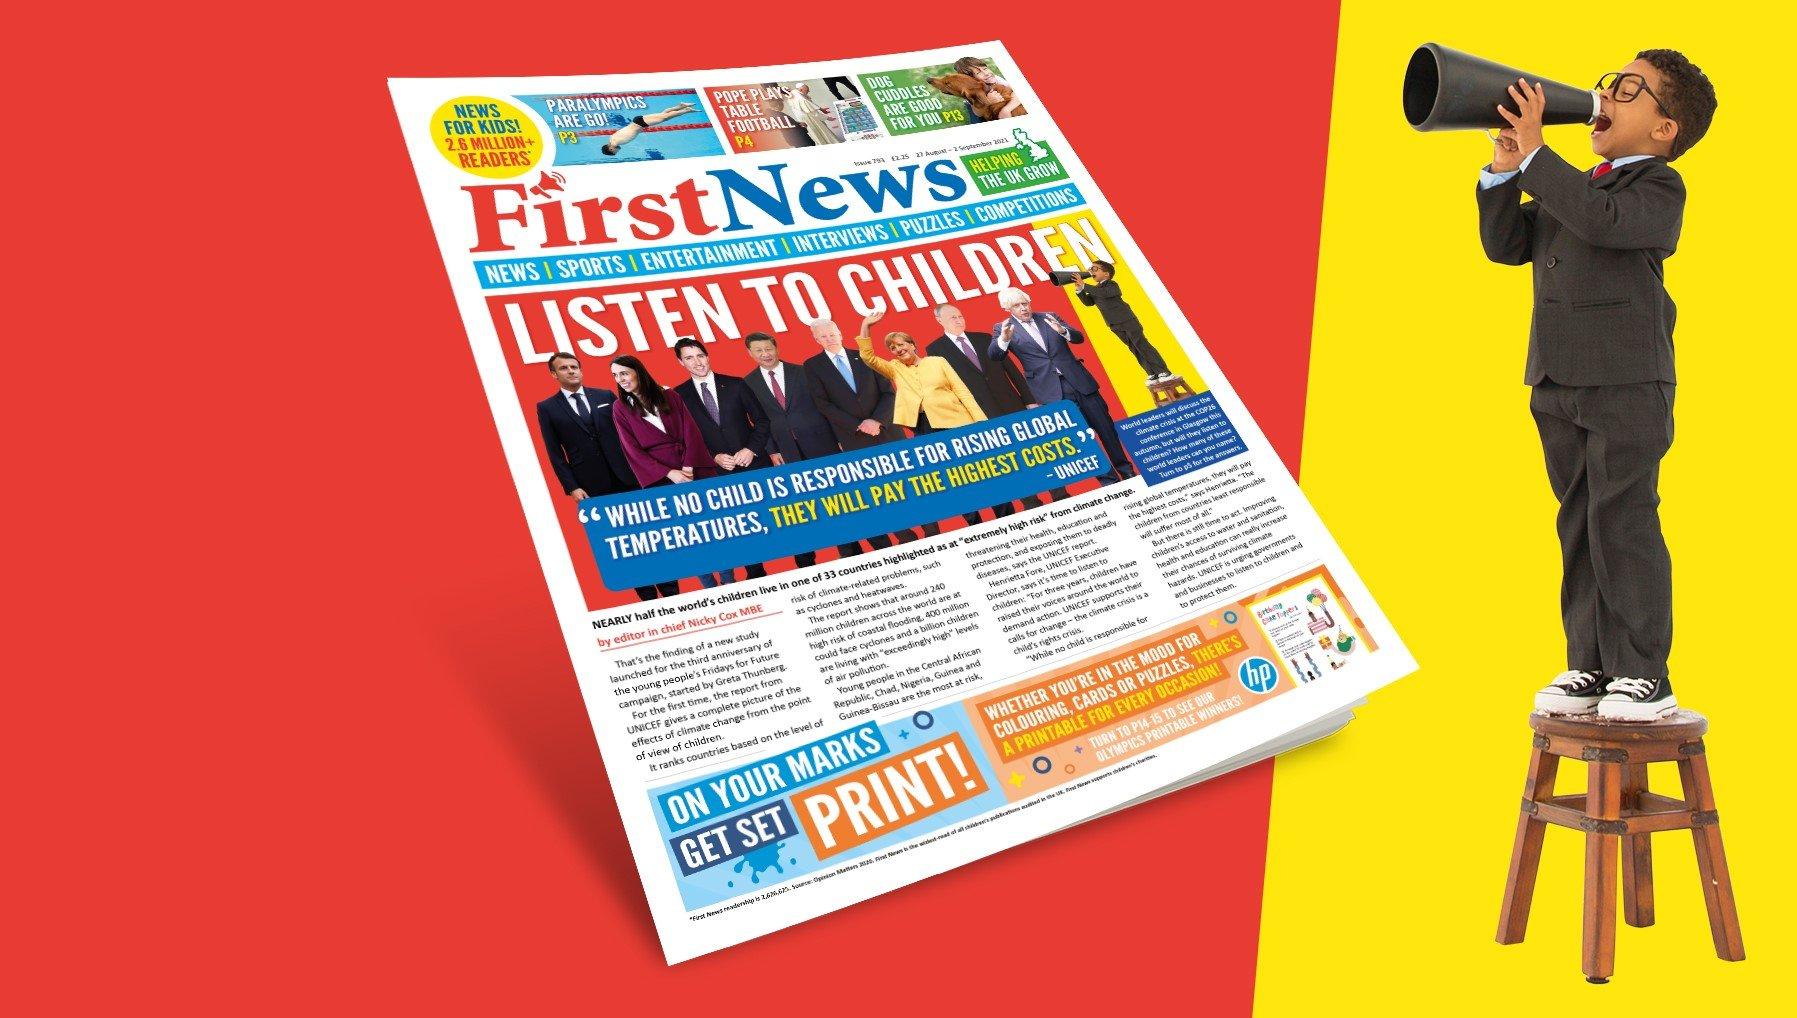 This week's front page   Issue 793